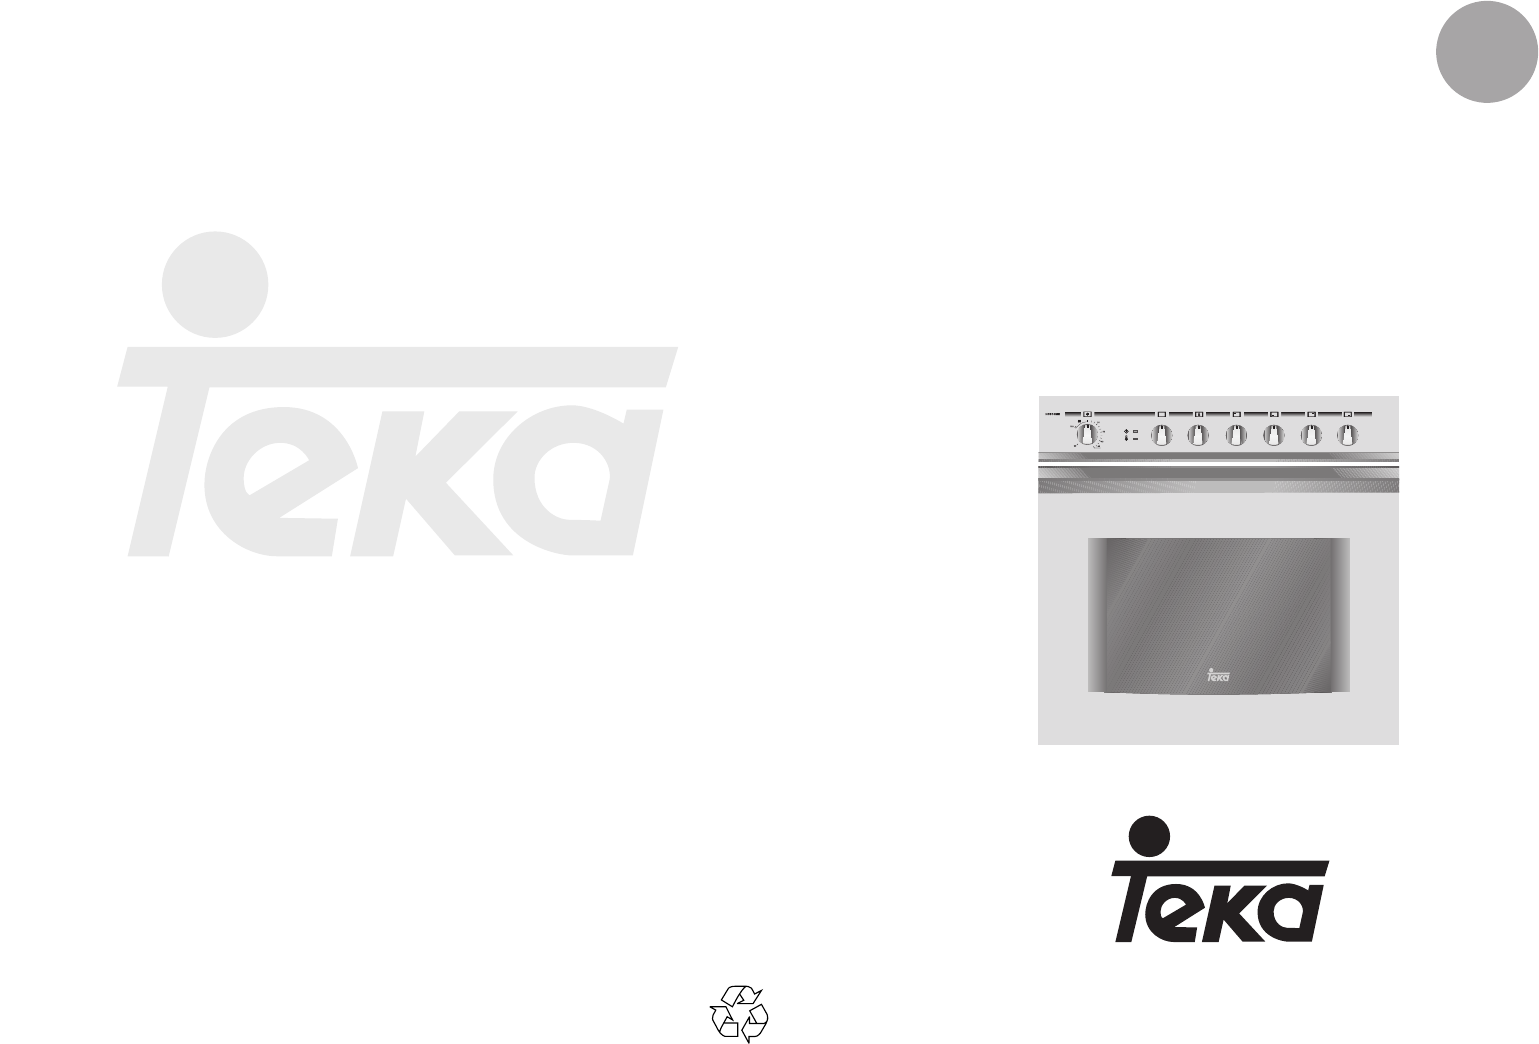 Teka Microwave Oven Hc 605 User Guide Manualsonline